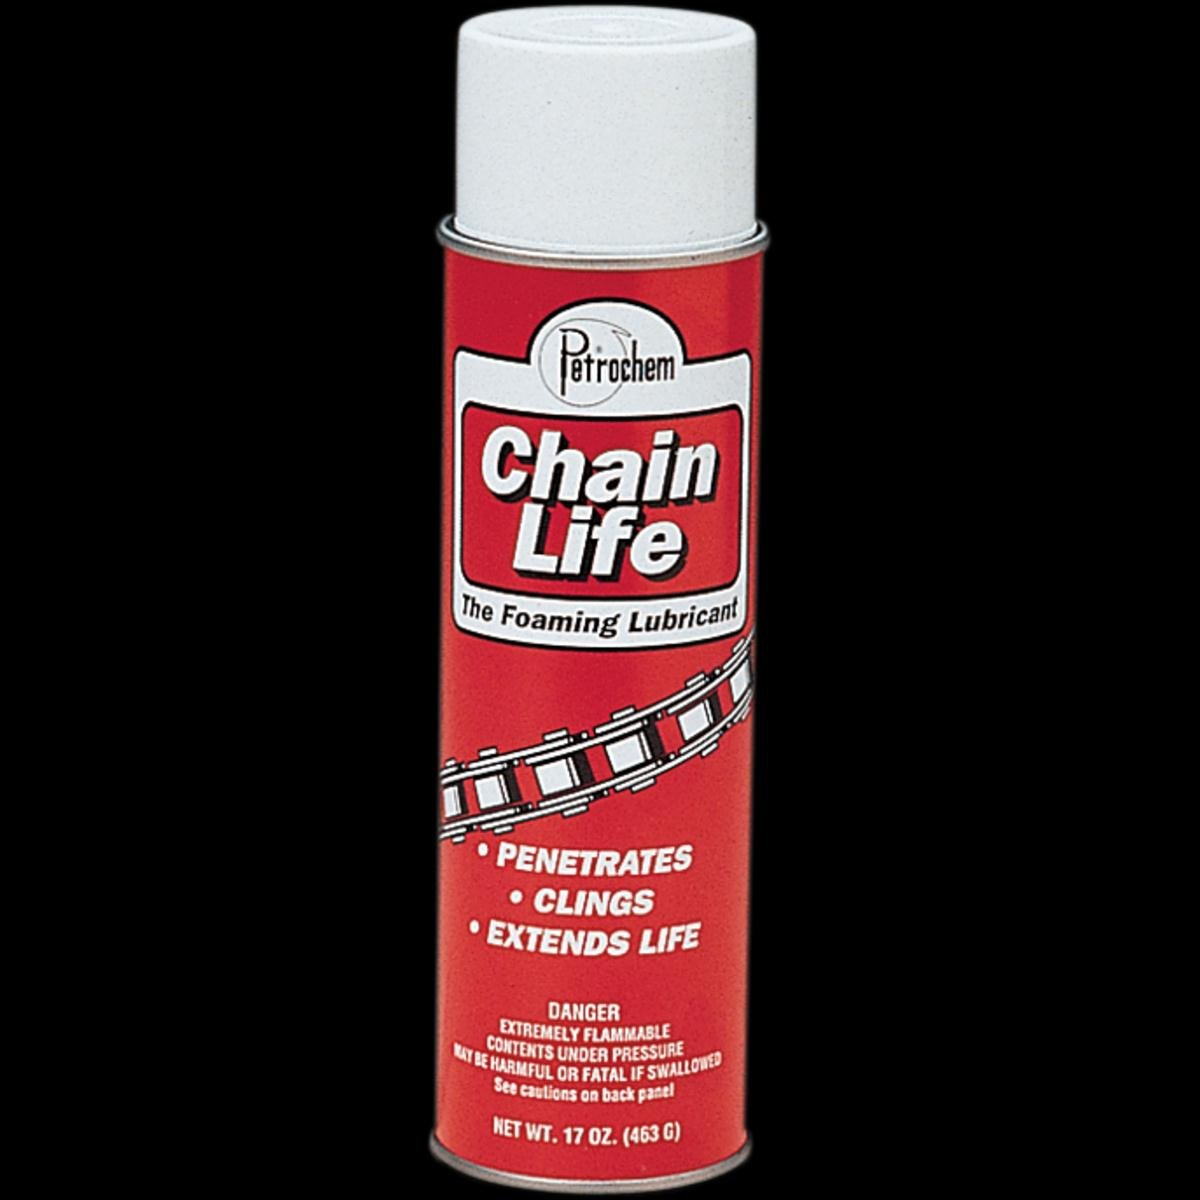 Protect All 35017CN Chain Life Foaming Lubricant with 17 oz. Aerosol Can